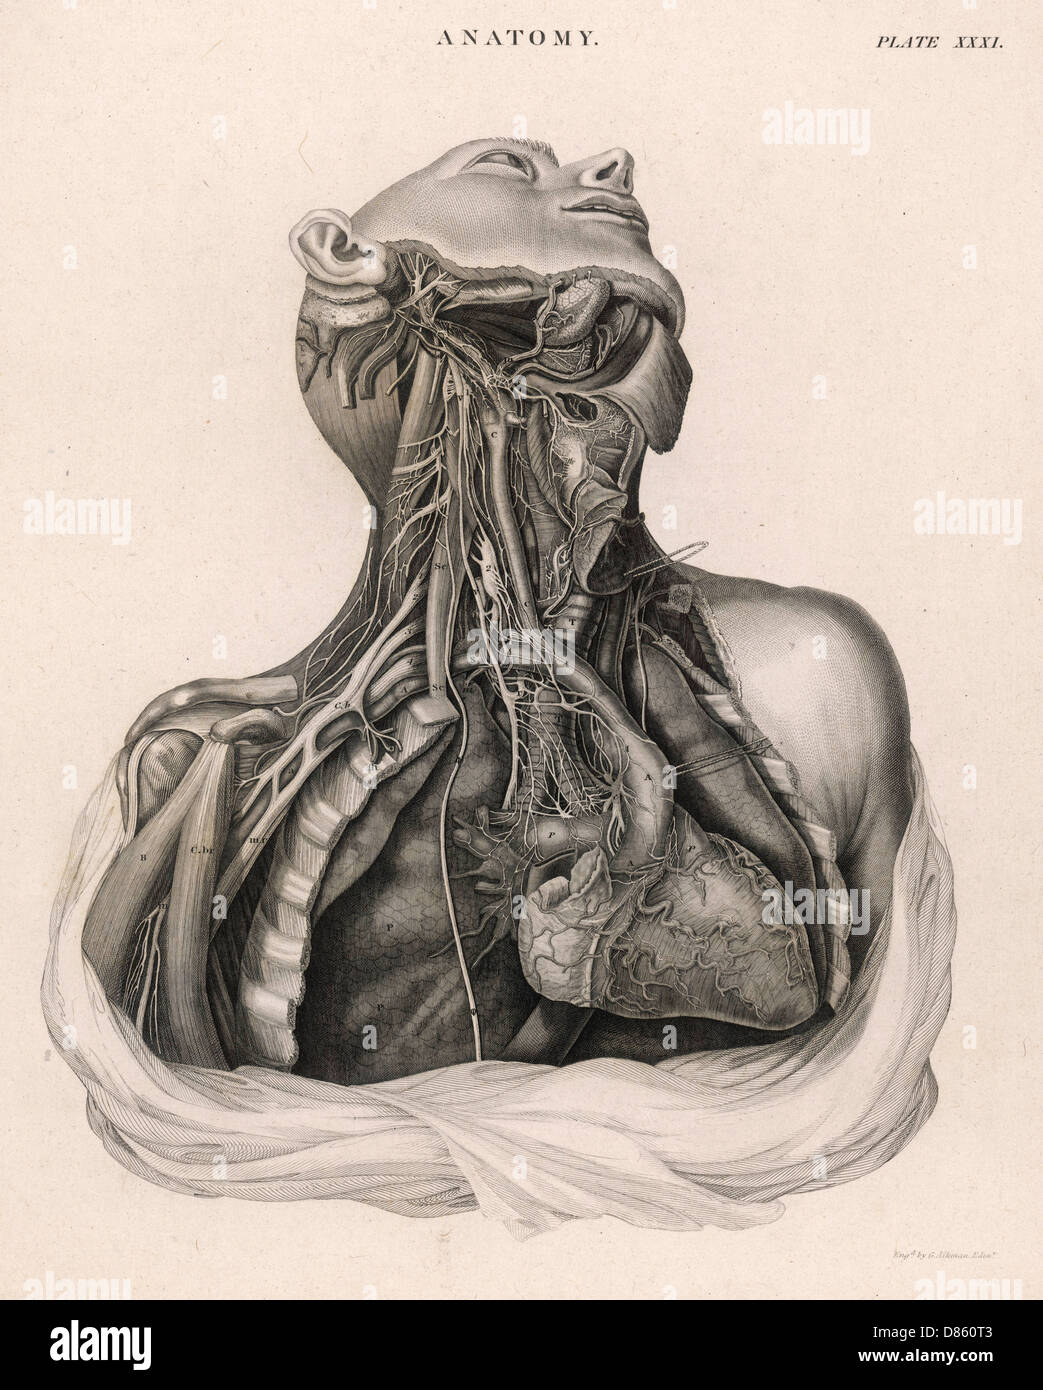 Human Heart Dissection Imágenes De Stock & Human Heart Dissection ...